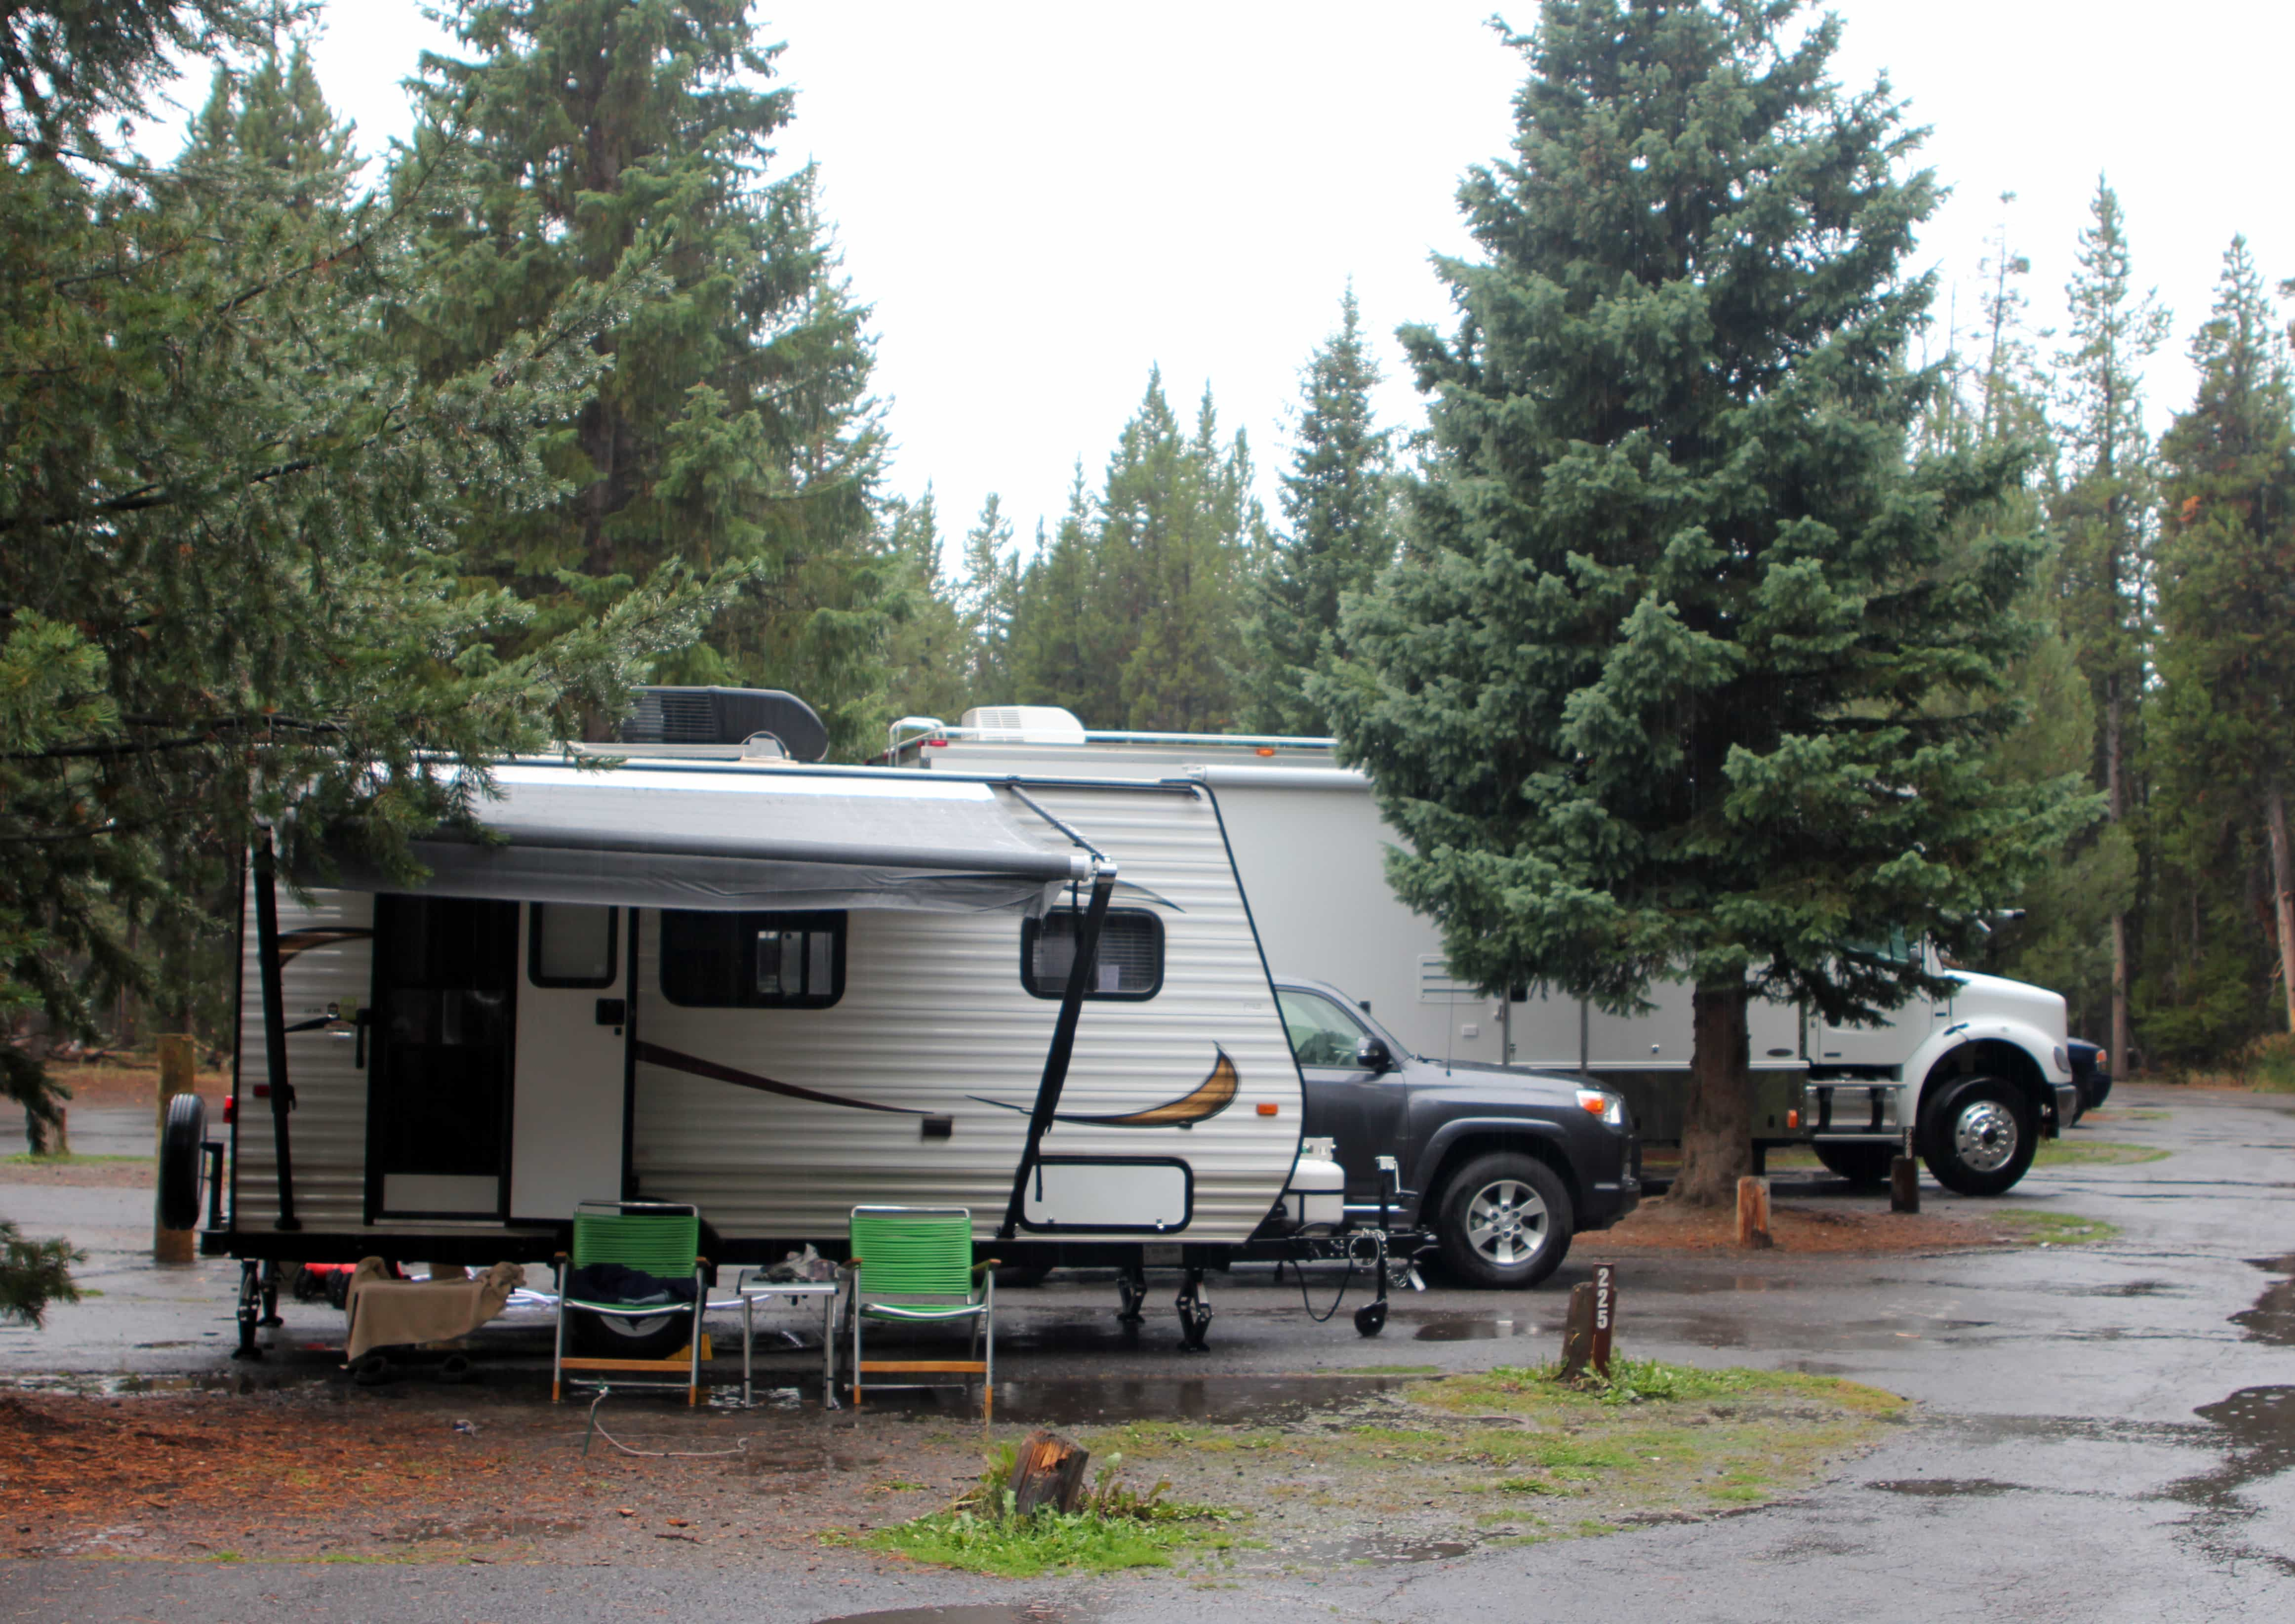 Road trip with an RV: Our home